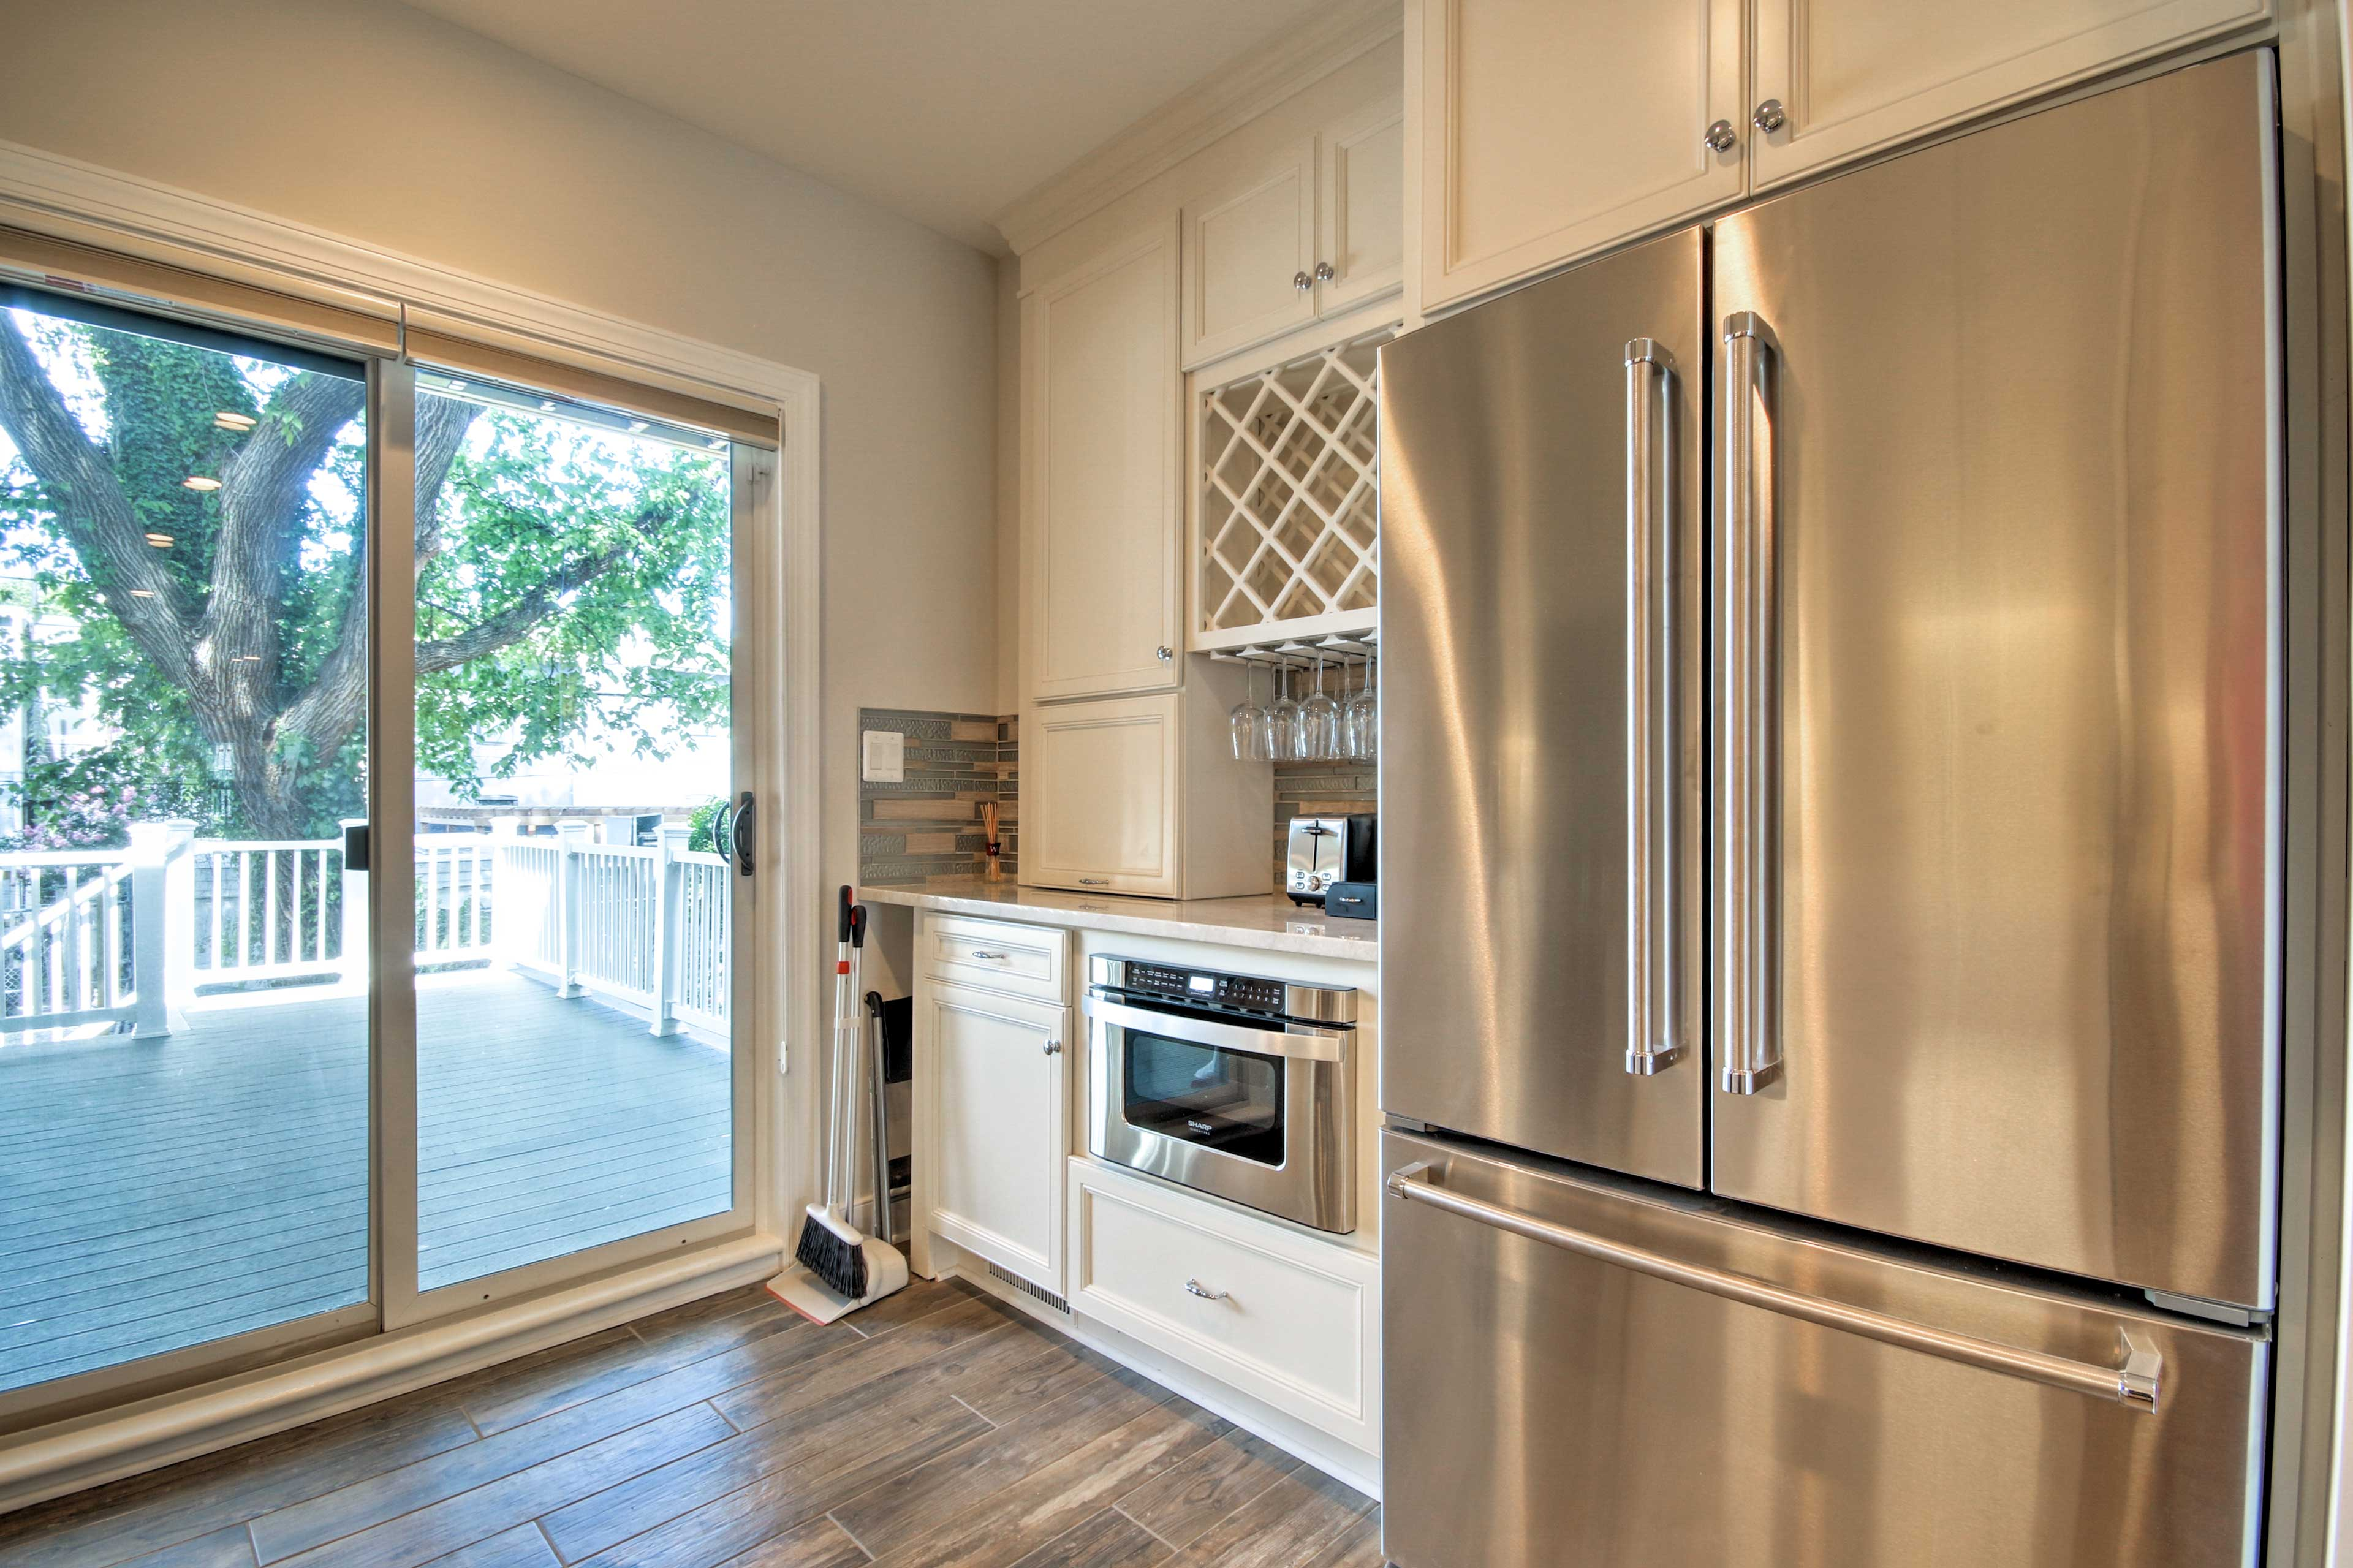 The kitchen features stainless steel appliances and marble countertops!